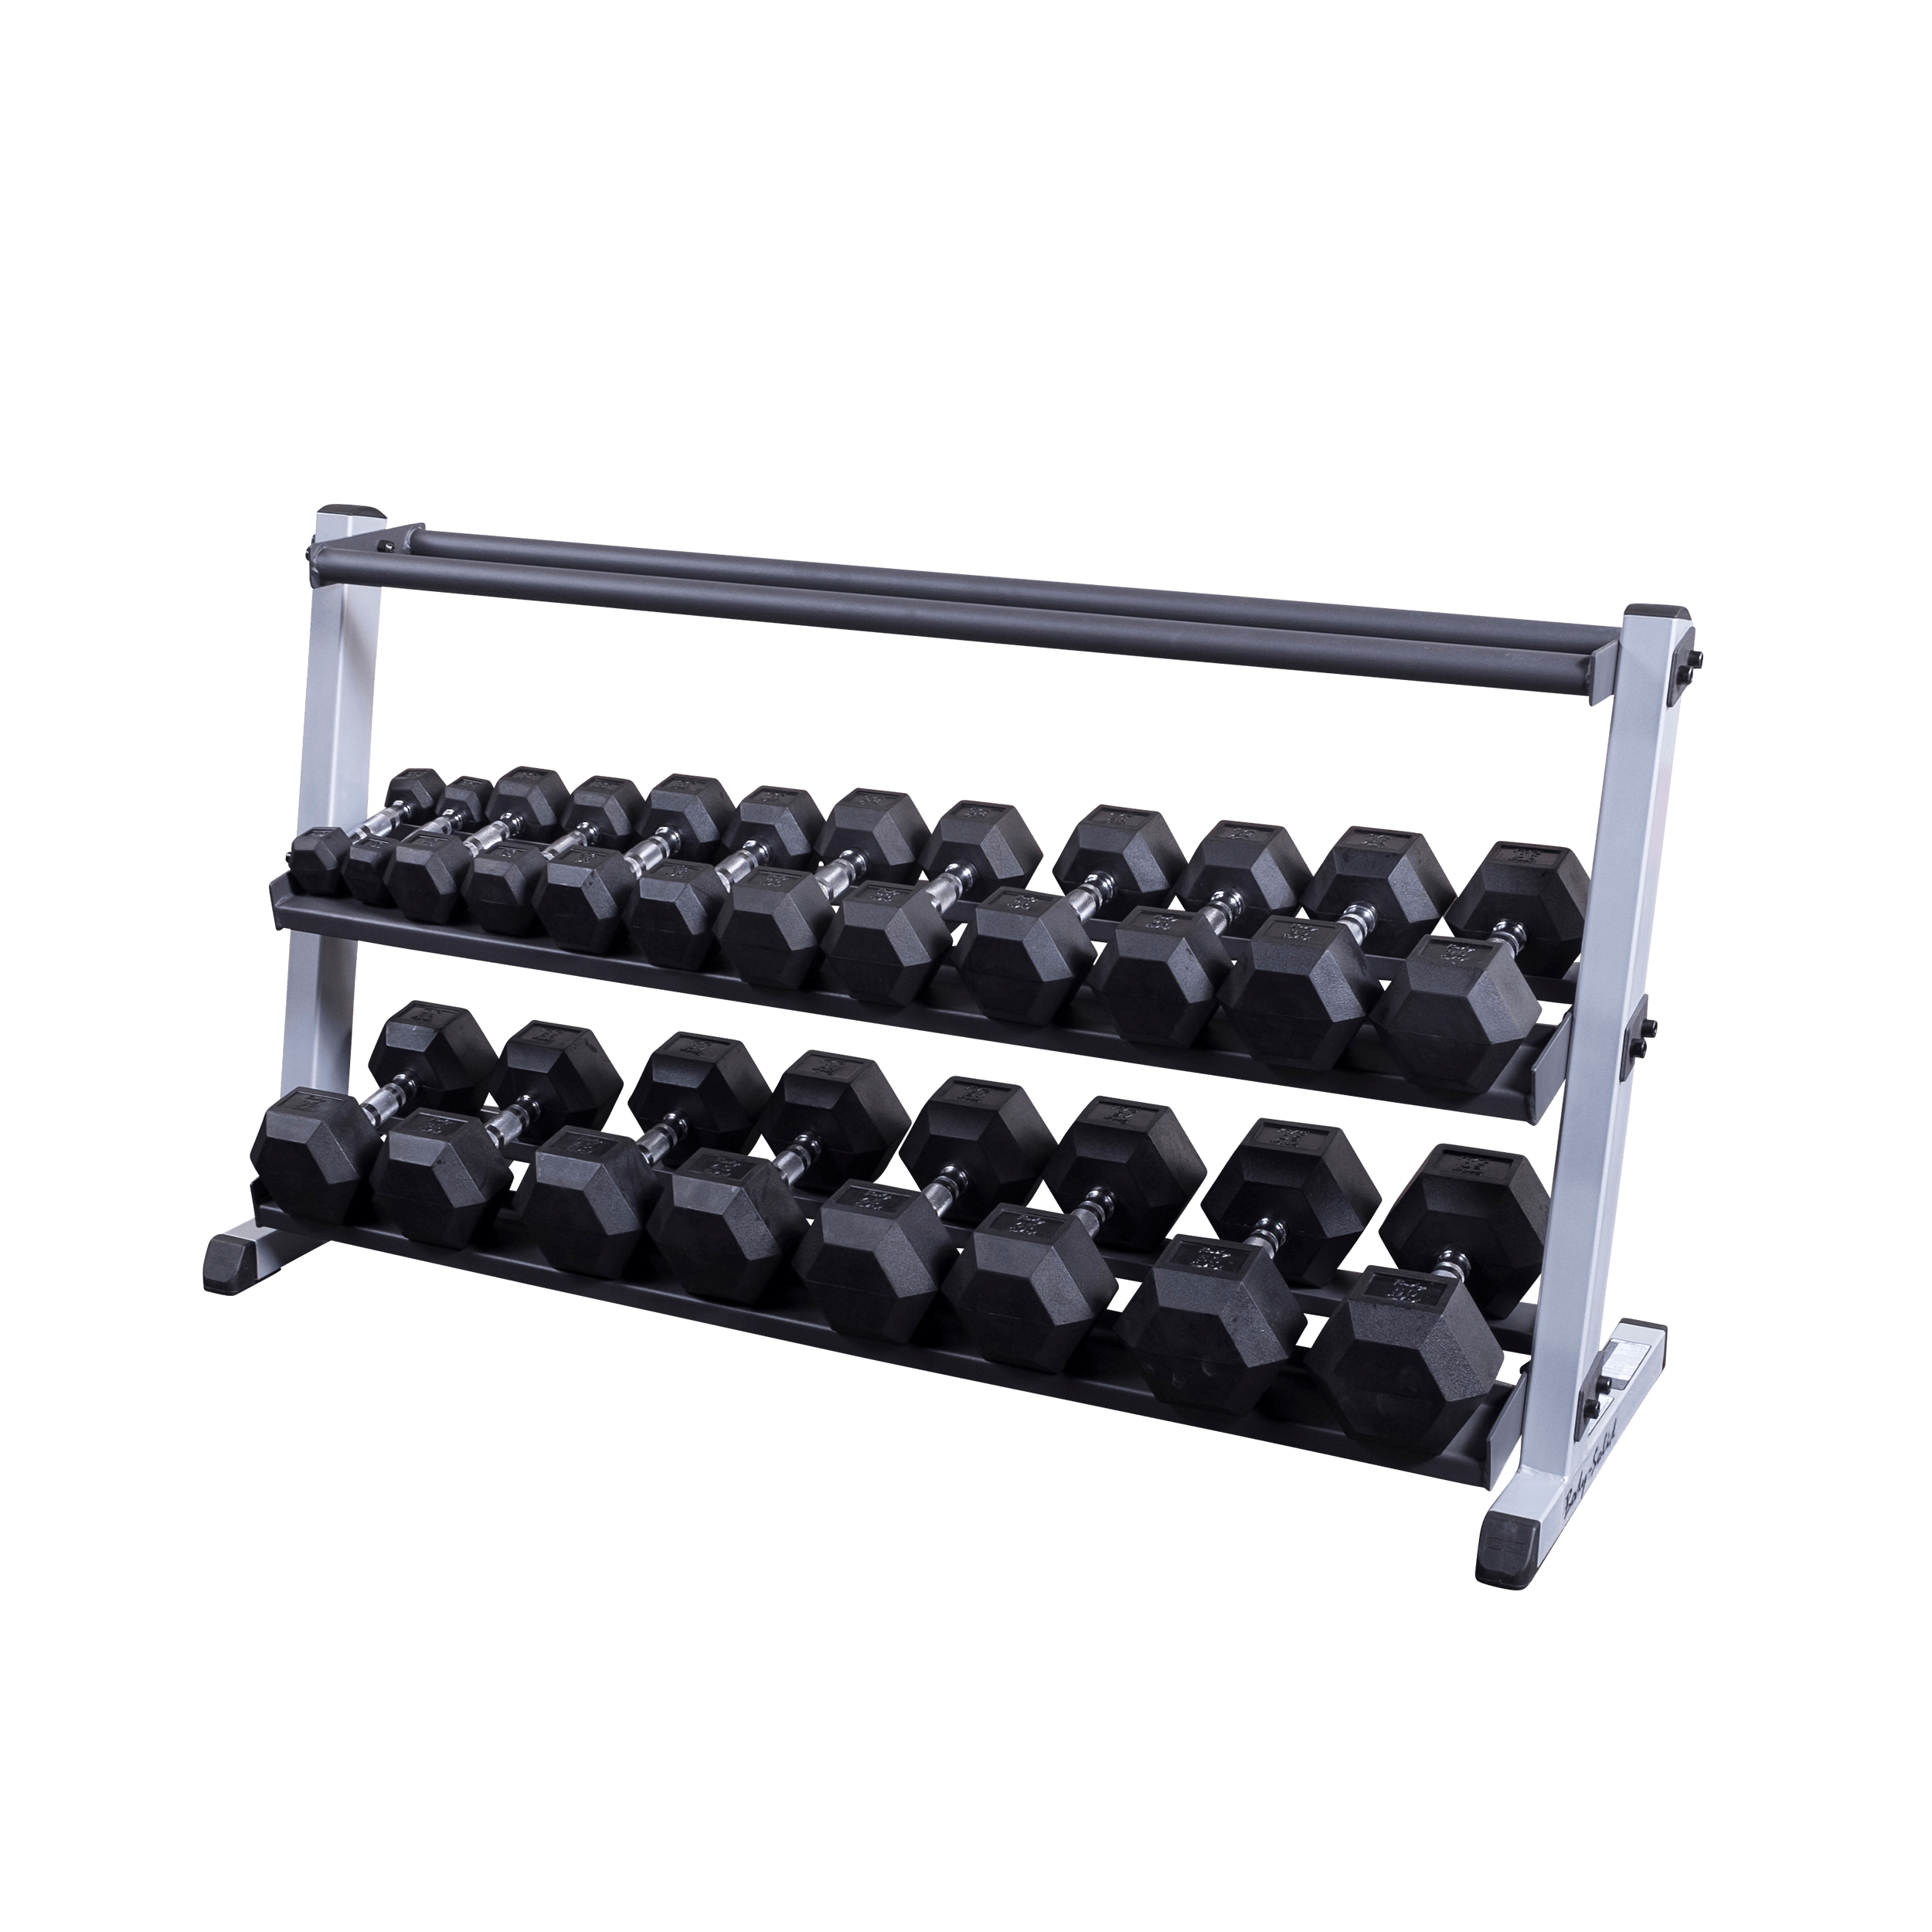 Body Solid GDR60MRT 3 Tier Dumbbell / Medicine Ball Rack